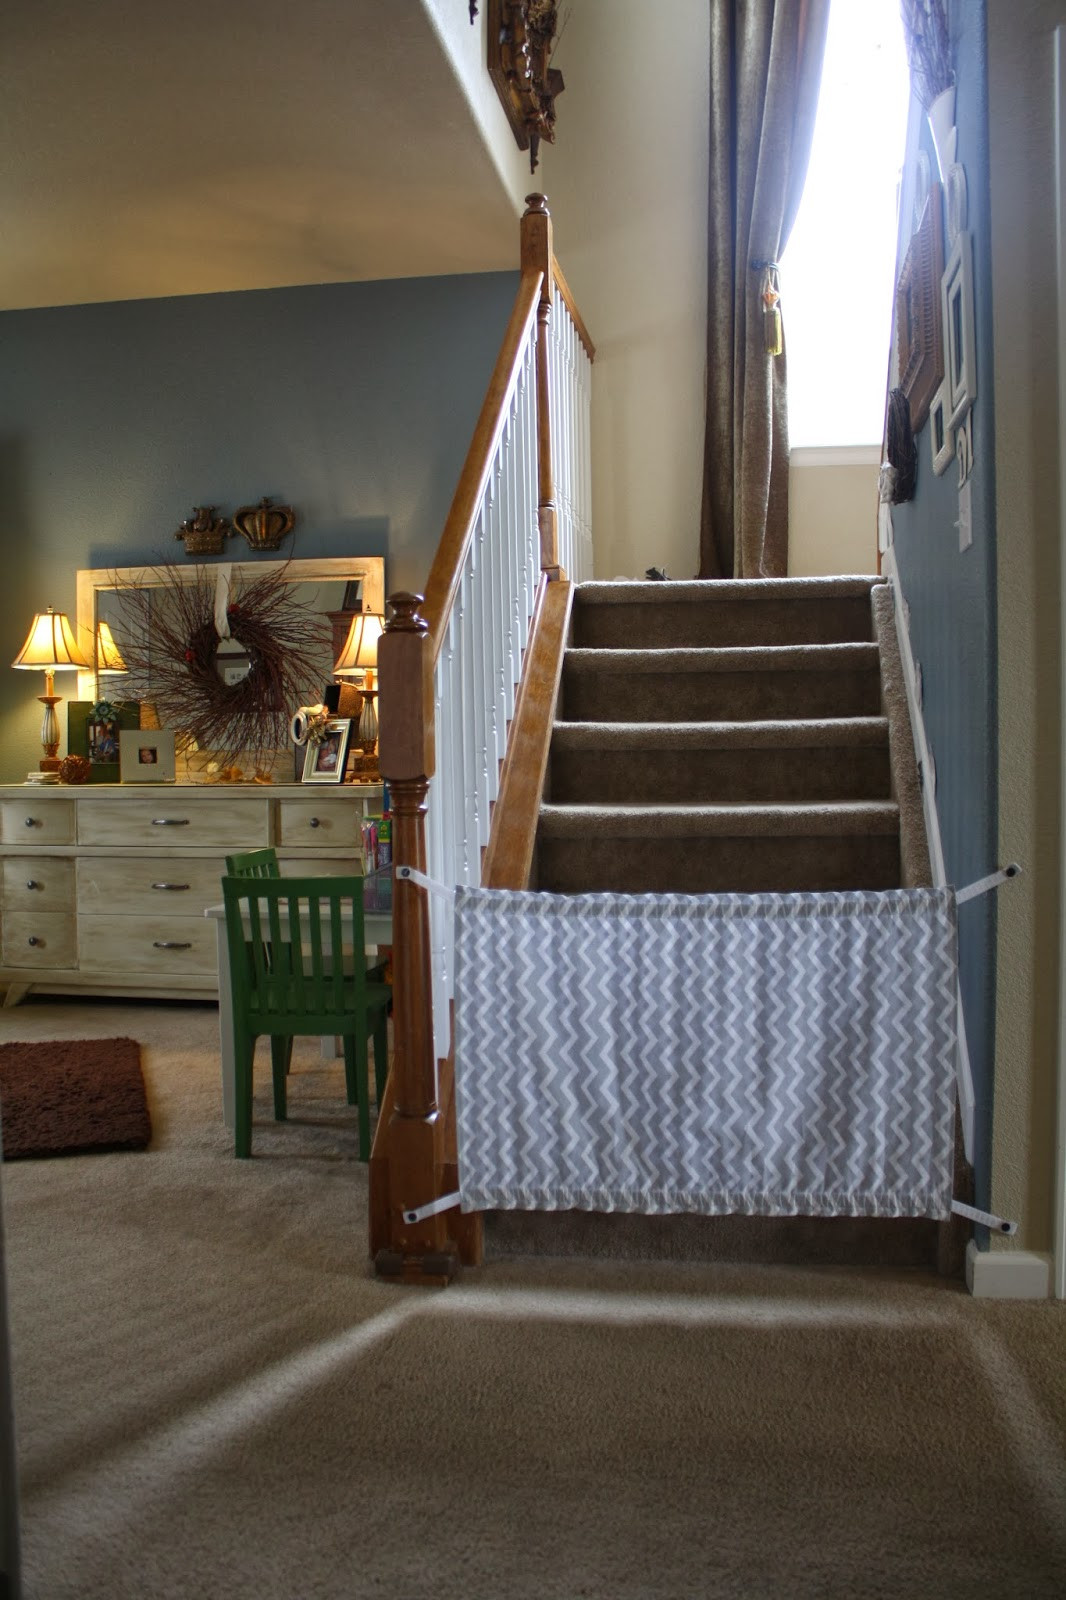 Best ideas about DIY Baby Gates . Save or Pin McCash Family blog Homemade Baby Gate A Tutorial Now.